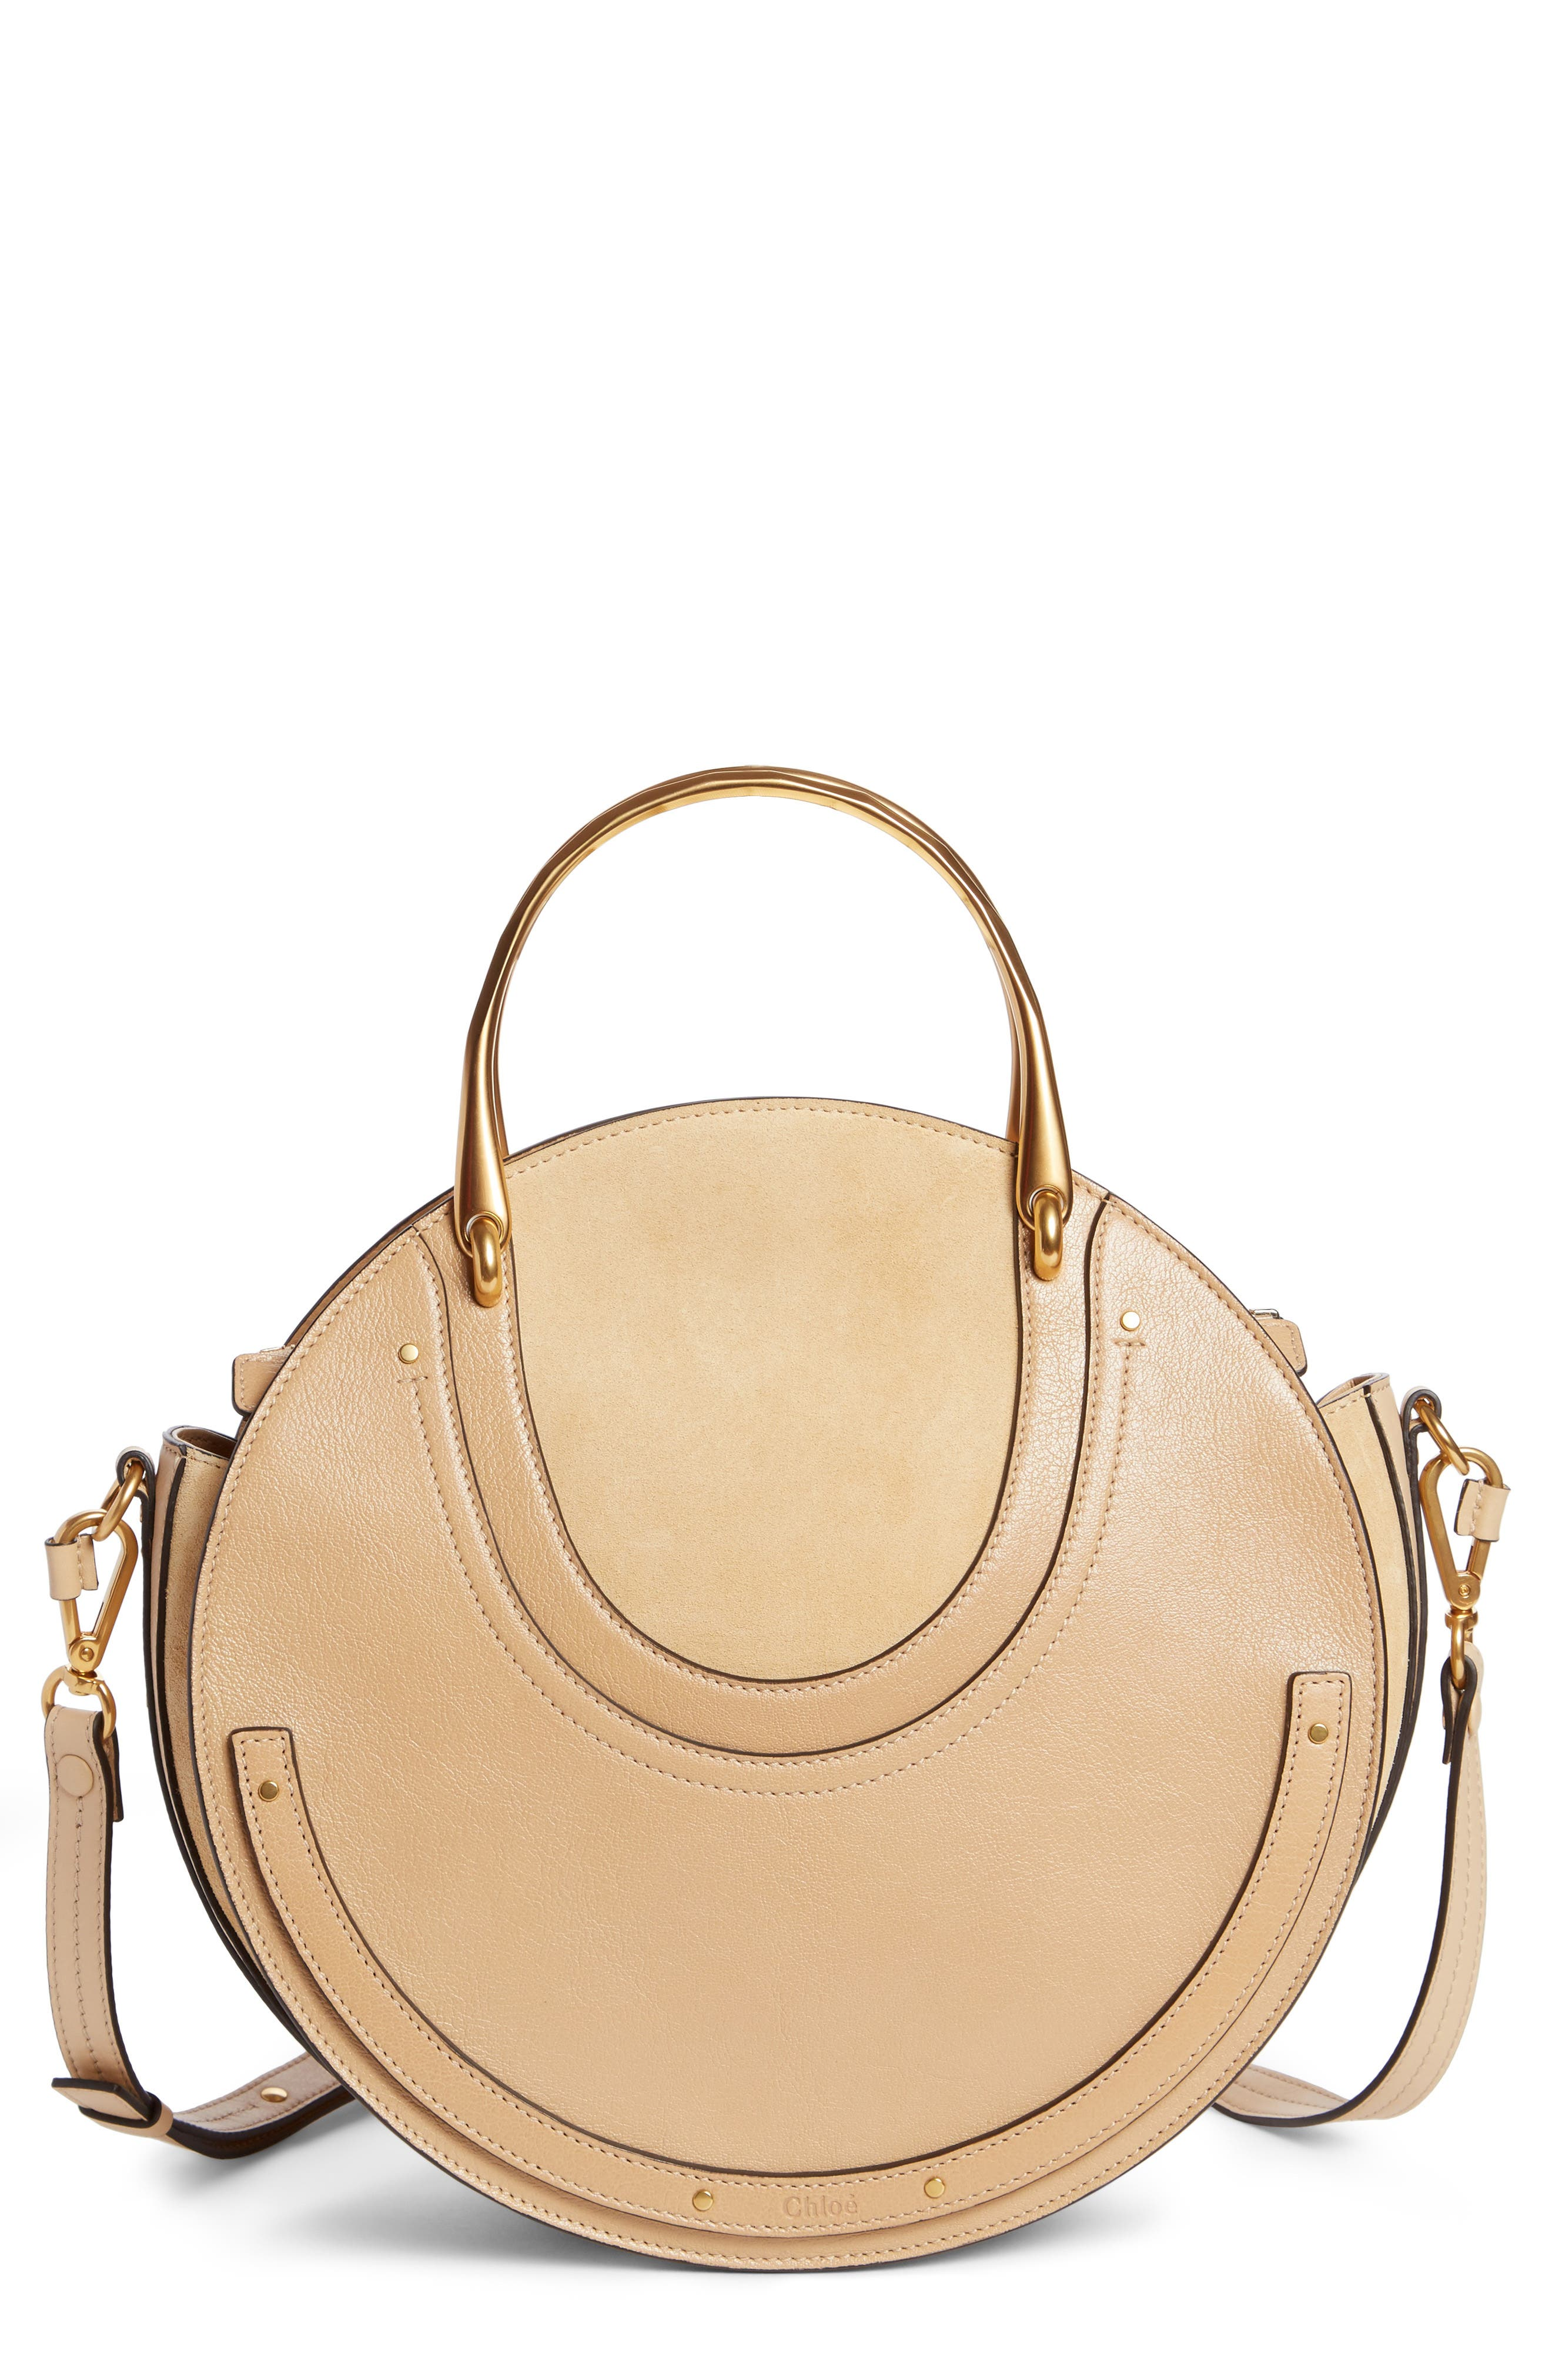 Alternate Image 1 Selected - Chloé Small Pixie Maxi Leather Satchel